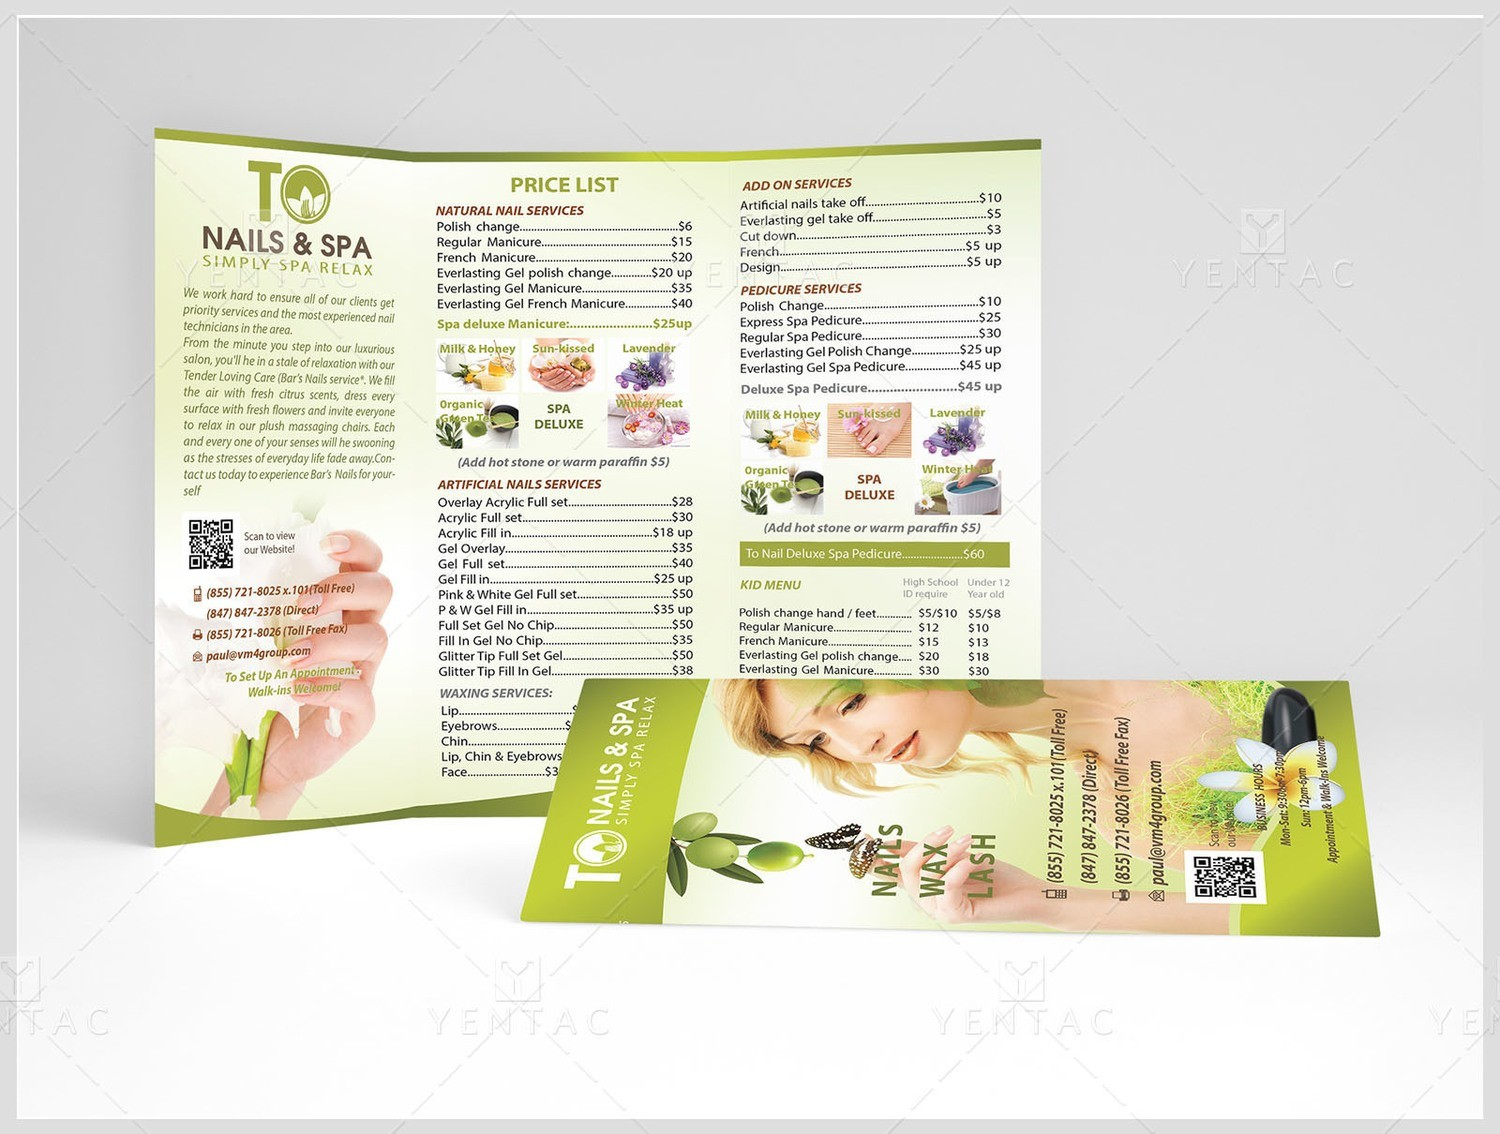 Menu-Take-Out Size 8.5x11 Tri-Fold (Letter Size) - Nail Salon #3011 TO Brand